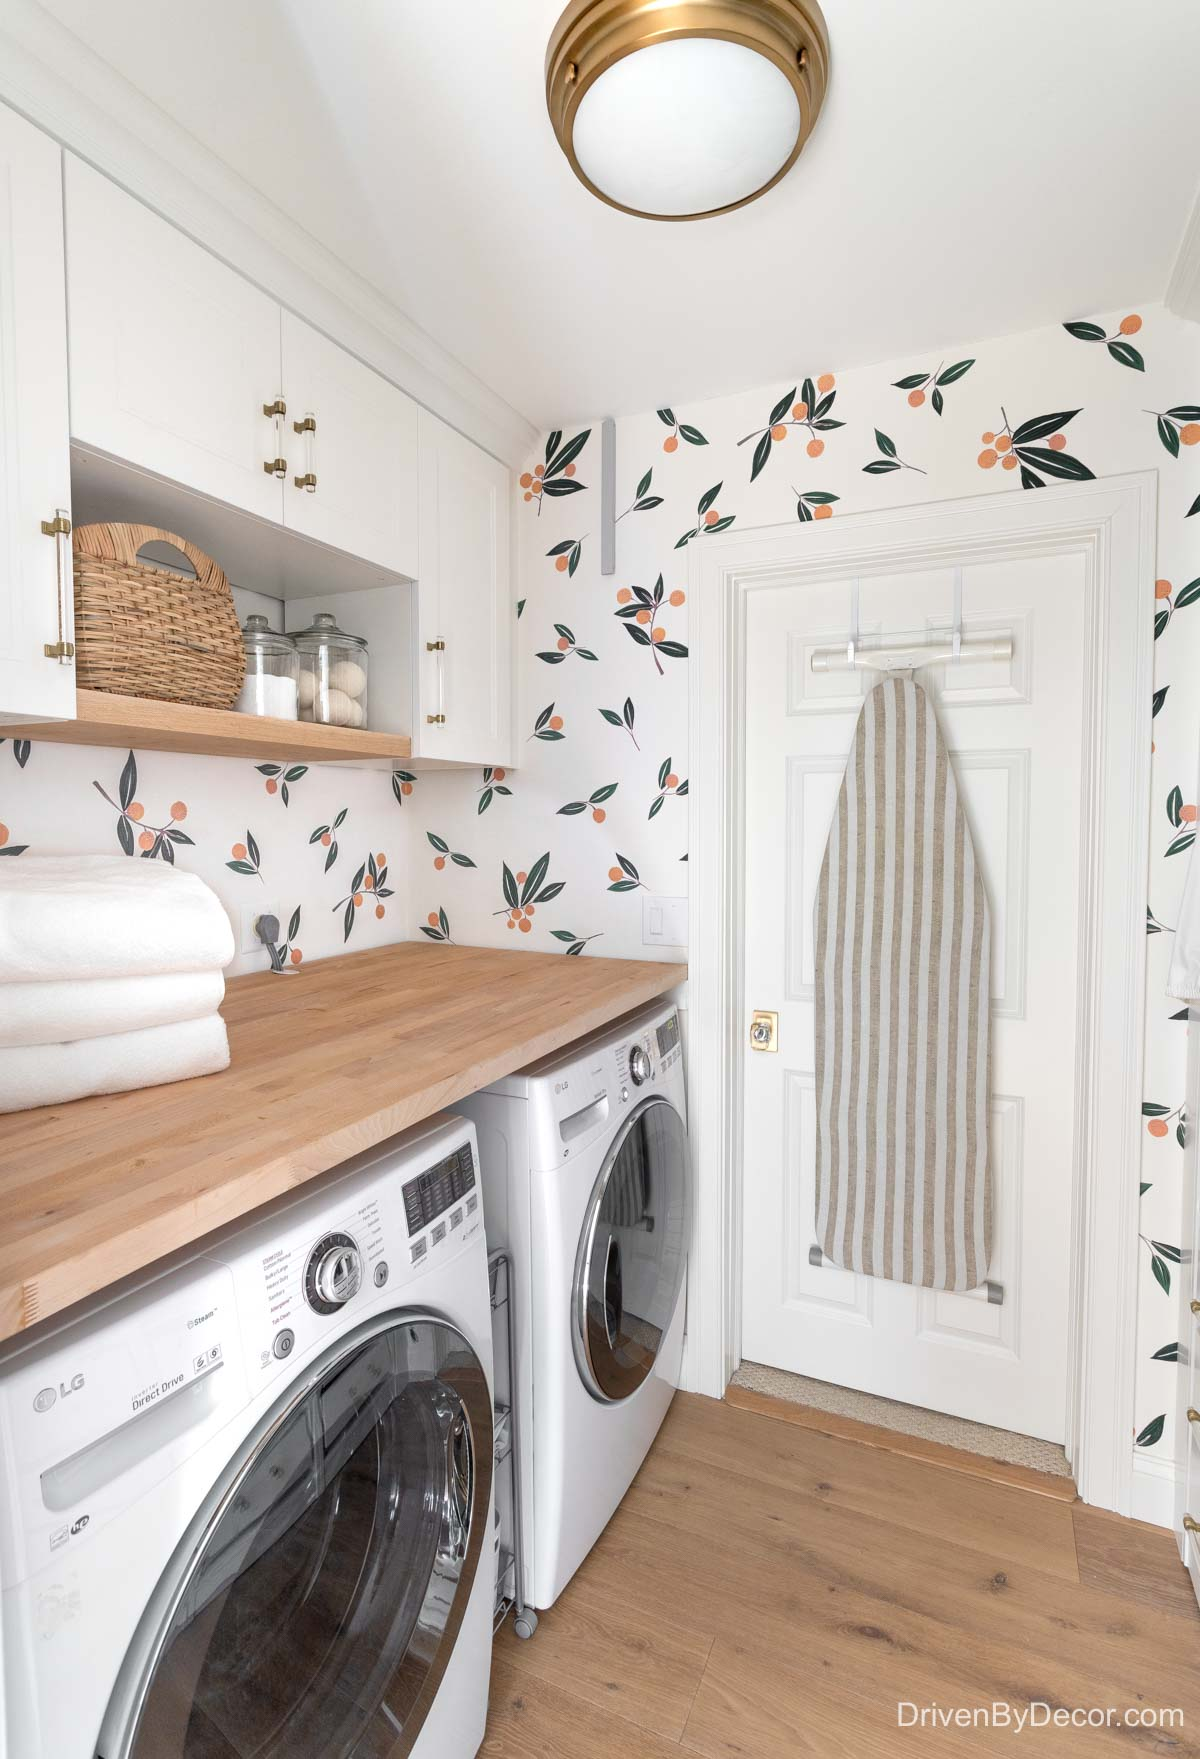 Home remodel: Laundry room after remodeling!